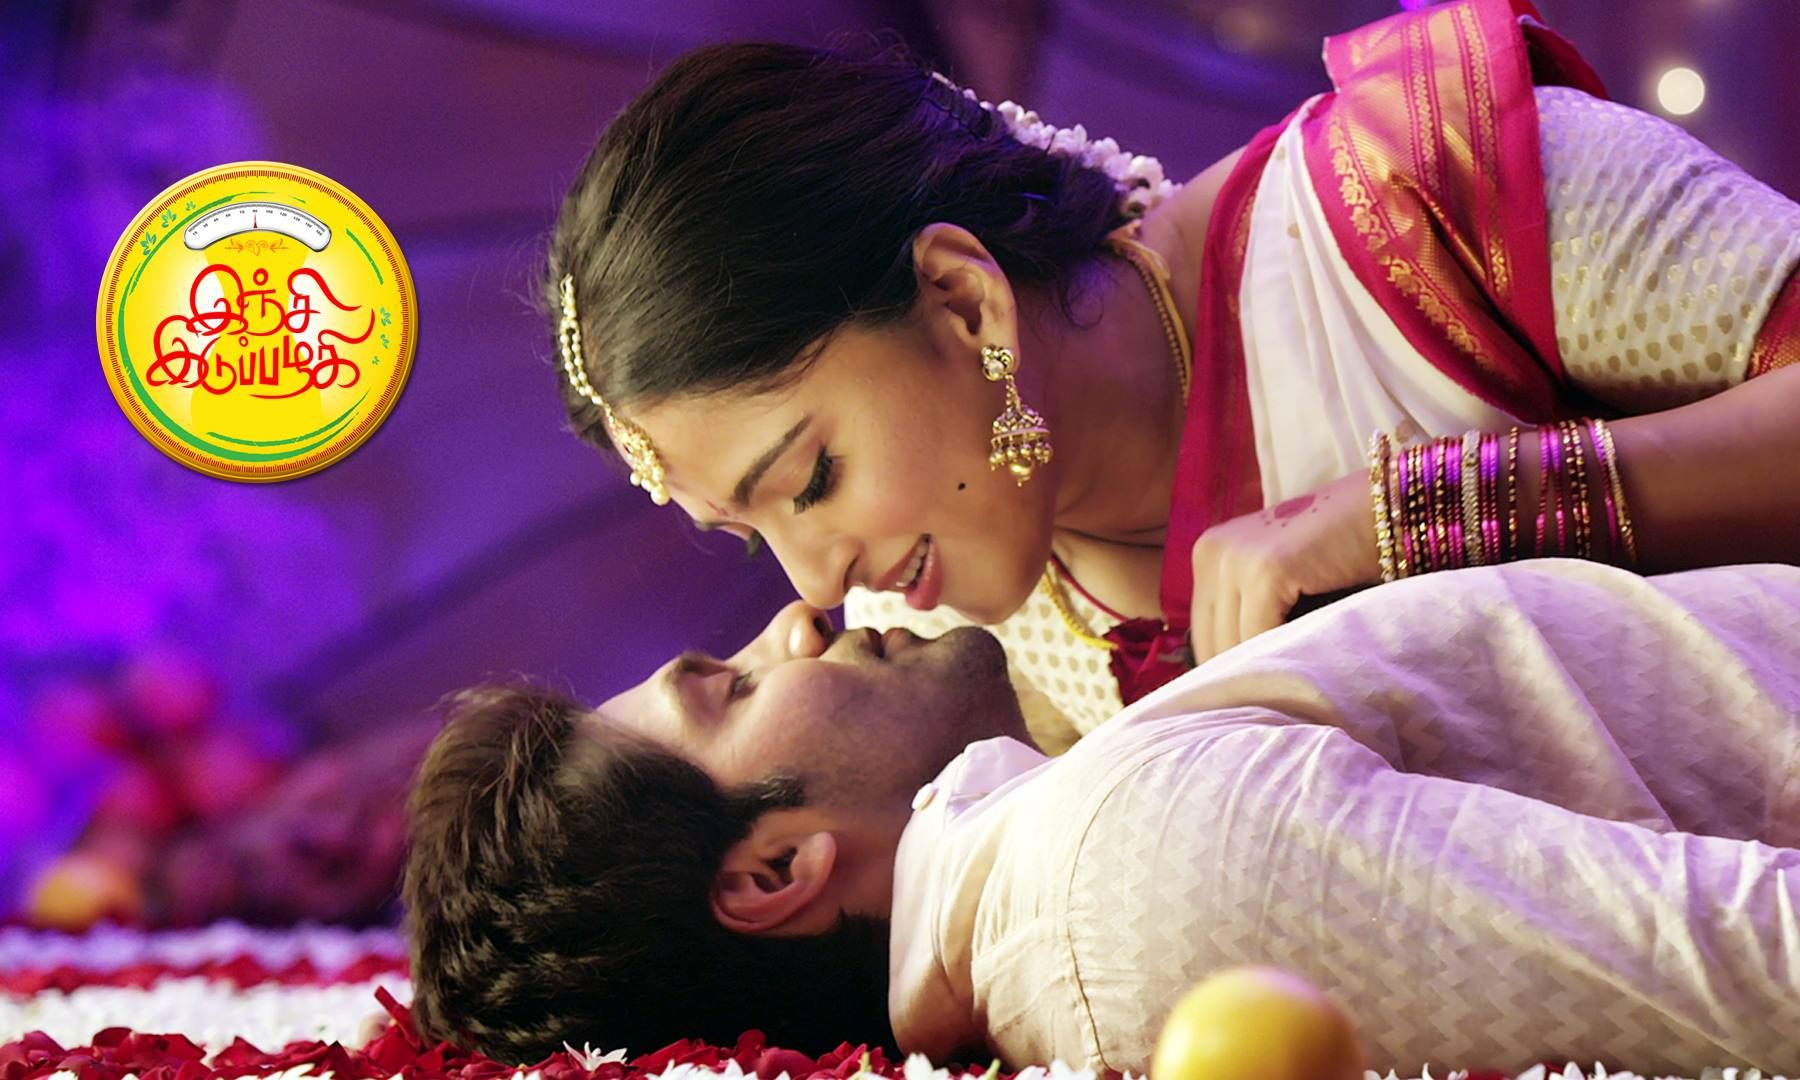 Inji Iduppazhagi Song Teaser (With images) Teaser, Songs